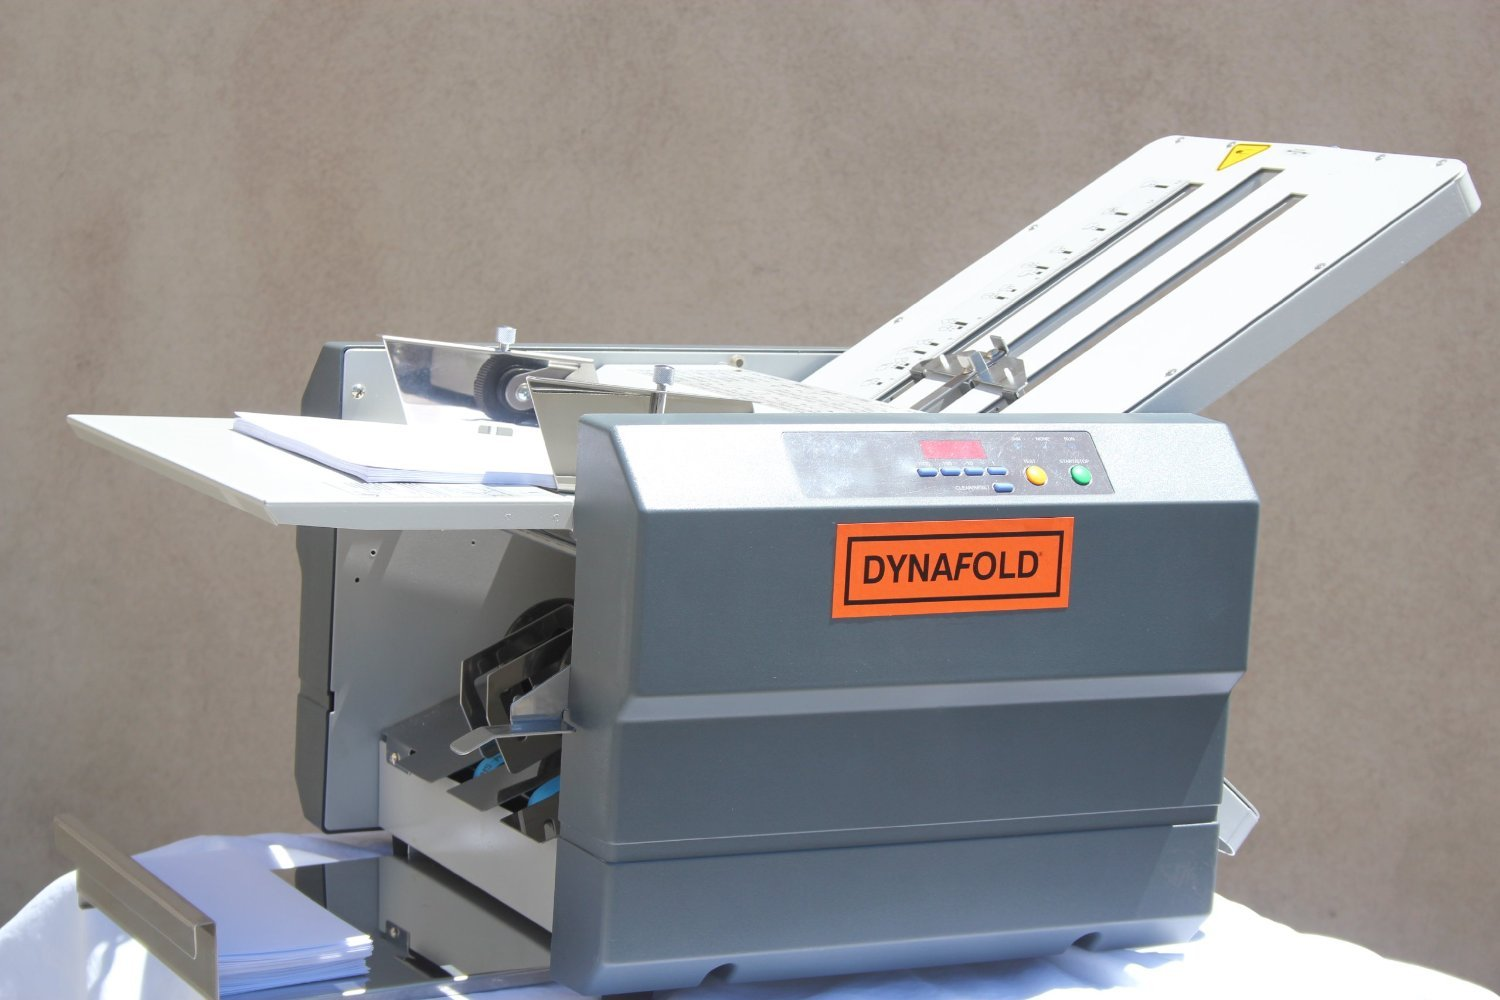 "Dynafold DE-42FC Center Feed Paper Folding, 15000 pcs/hr Folding Speed, Unique Feed System Allows Heavy & Glossy Paper Folding, Papers Folded Can Range in Size From 3.5"" x 5"" up to 11"" x 17"""